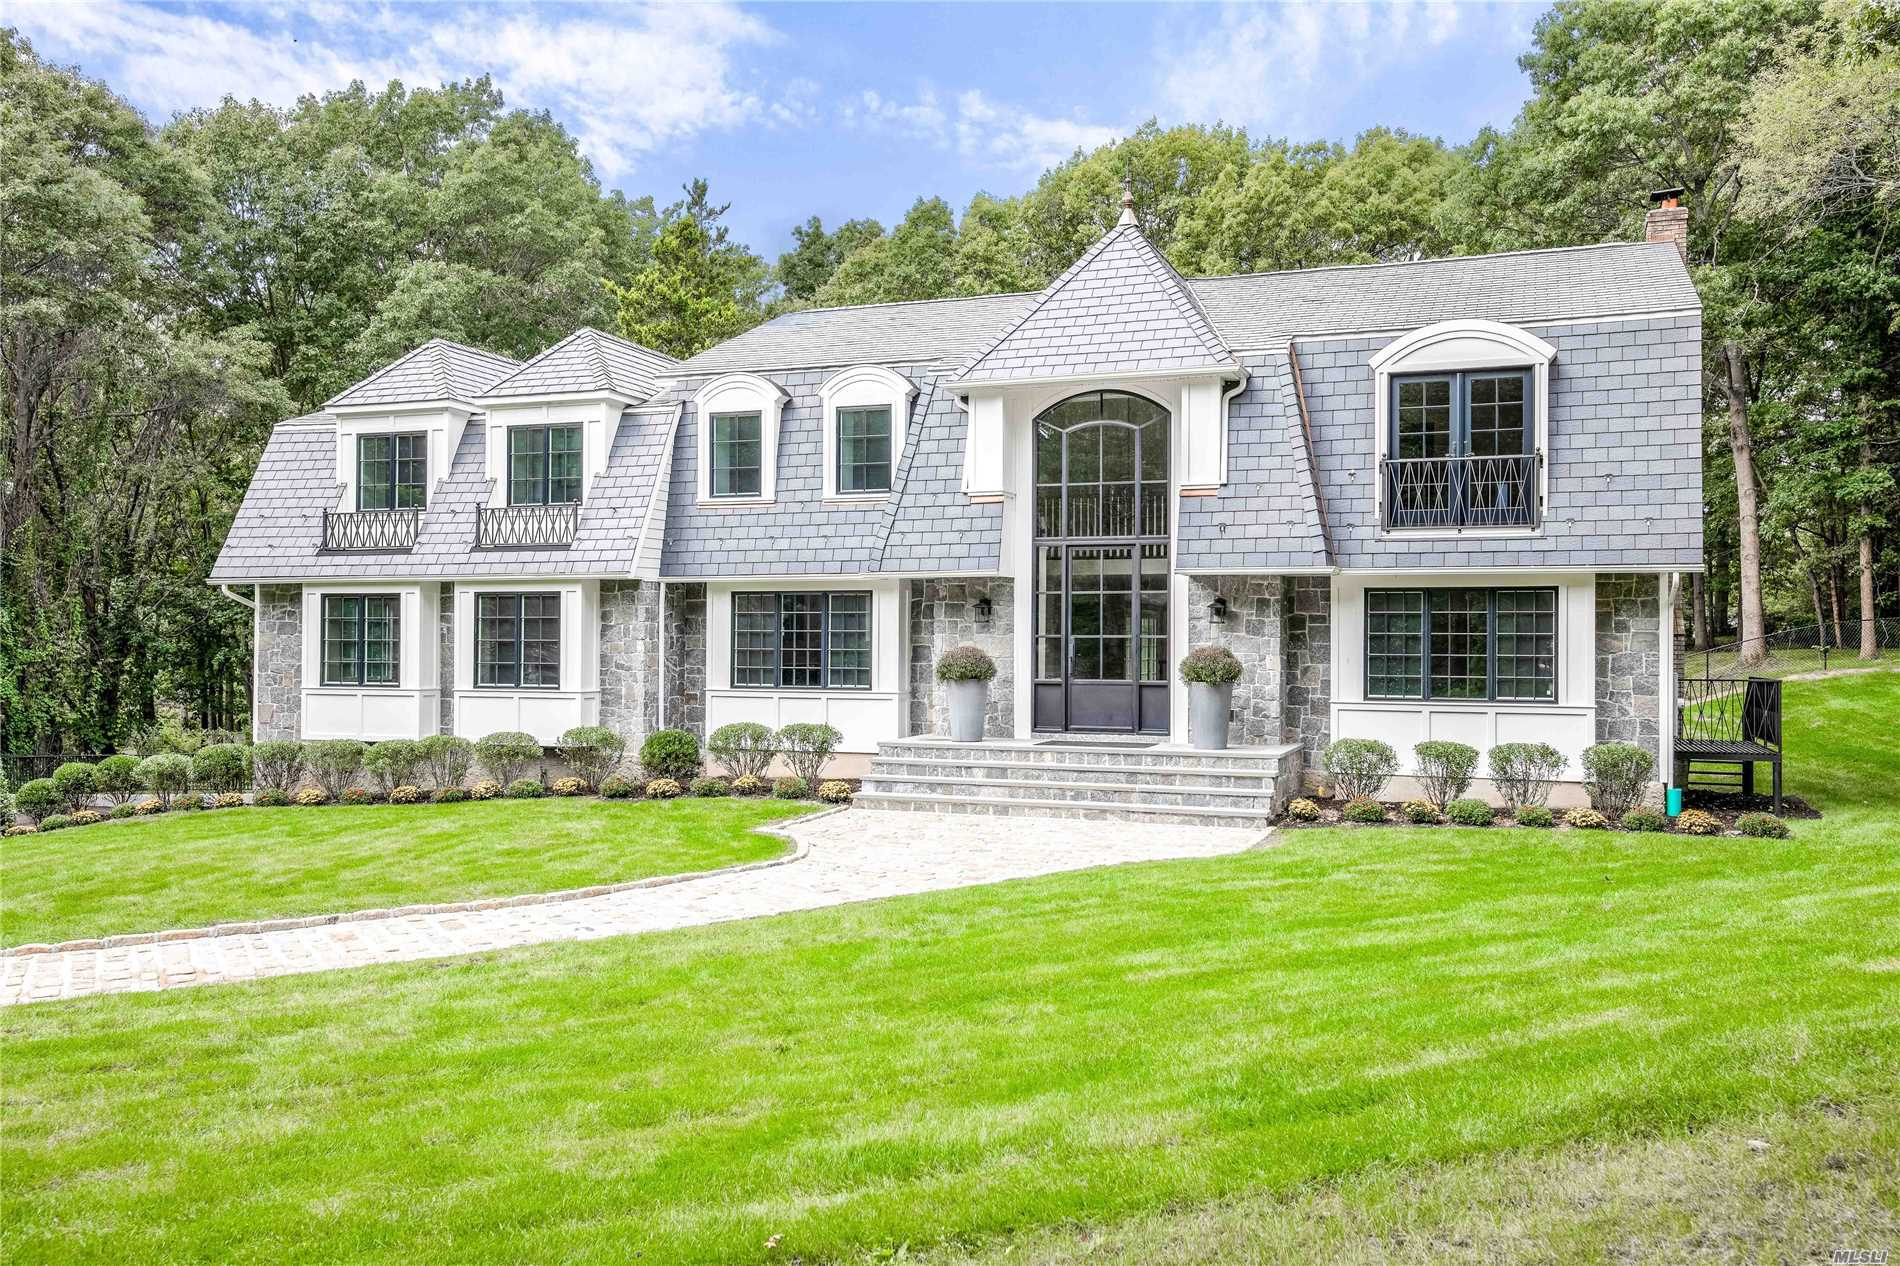 Laurel Hollow, Cold Spring Harbor School District. .. Nestled On A Quiet Cul De Sac. Brand New, Custom Built And Designed For Today's Lifestyle.Offers An Open And Easy Floor Plan For Entertaining And Everyday Living. Gorgeous Kitchen And Baths. Flooded With Loads Of Natural Light. Set On 2 Pristine Acres Of Property With In-Ground Gunite Pool, Cabana.5 Car Garage, Car Collectors Dream, Village Beach And Mooring Rights, Police Force.5 Min To Lirr. .